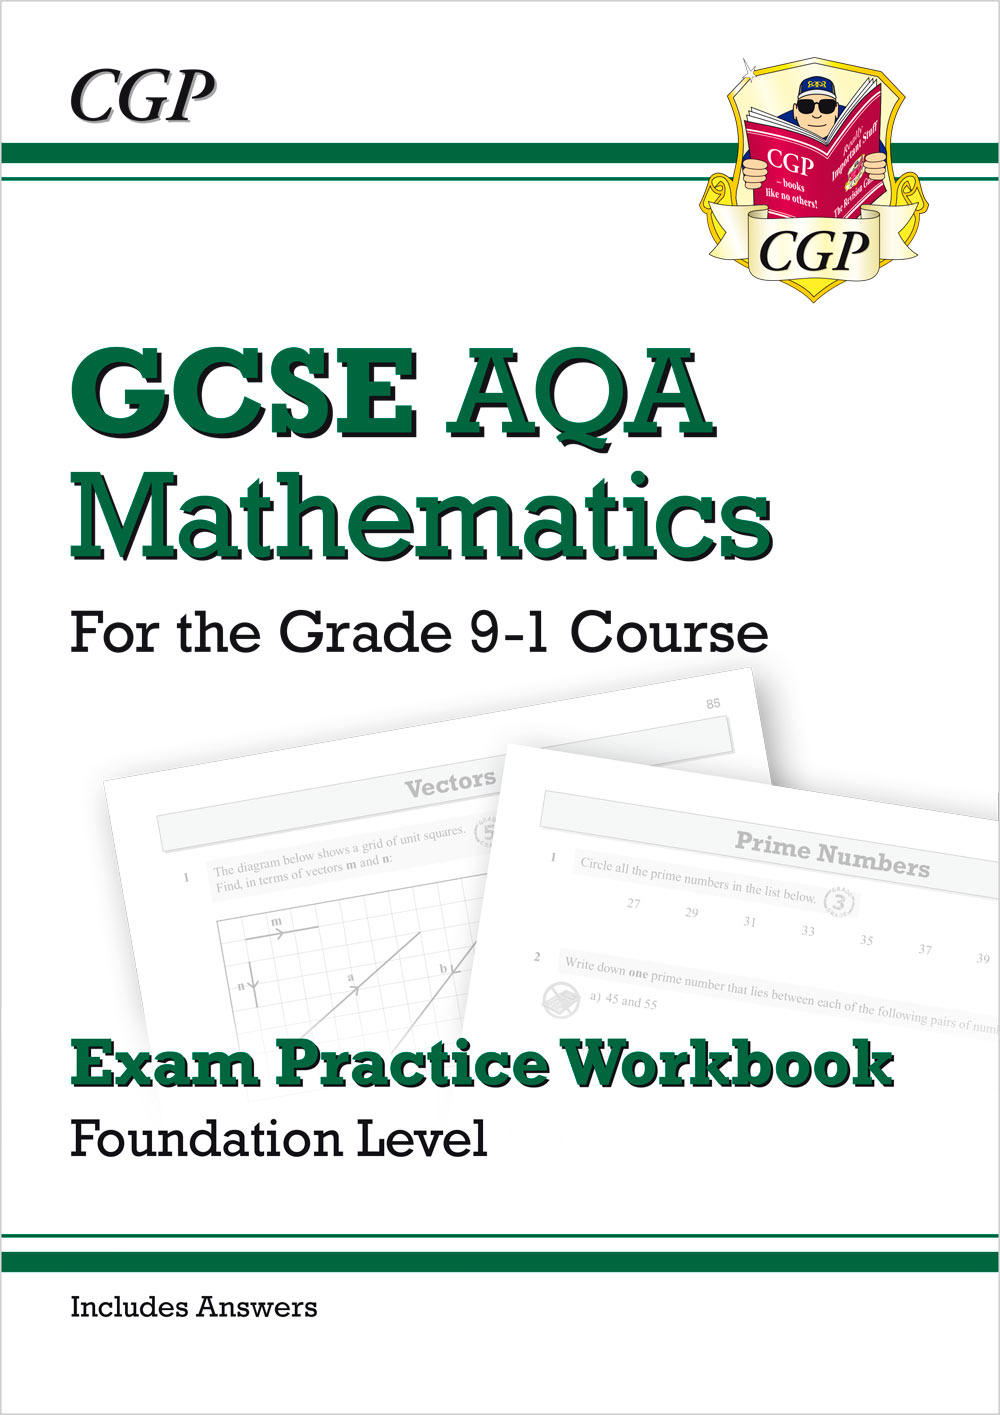 MQFQ42 - GCSE Maths AQA Exam Practice Workbook: Foundation - for the Grade 9-1 Course (includes Answ